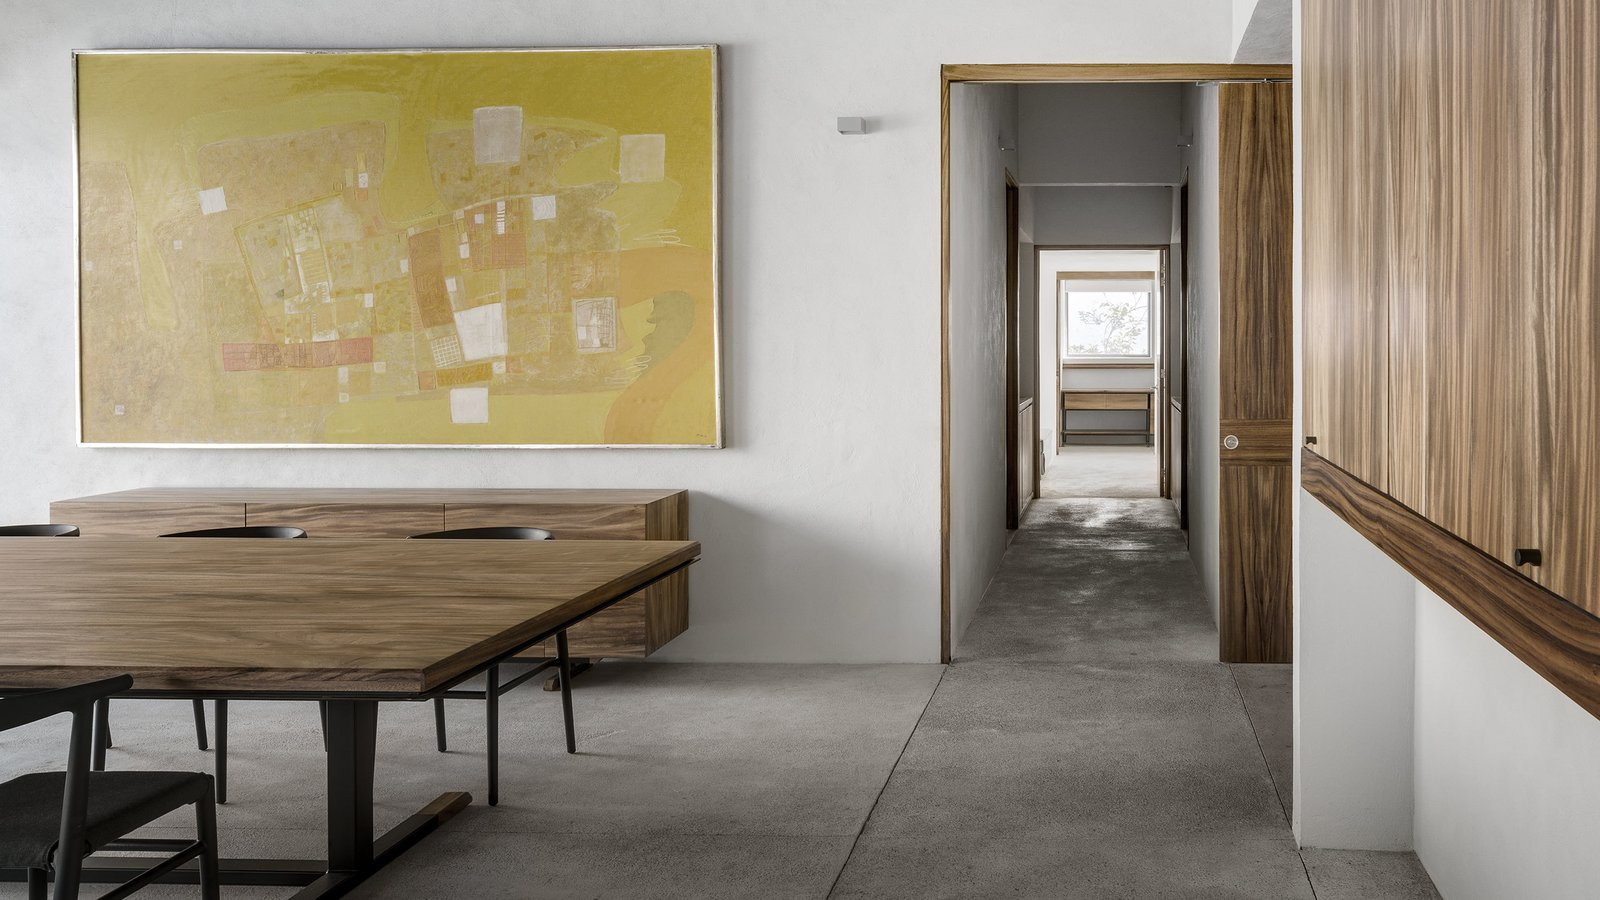 Tagged: Dining Room, Table, Chair, Storage, and Concrete Floor.  Casa Paraíso by DCPP by LCMX